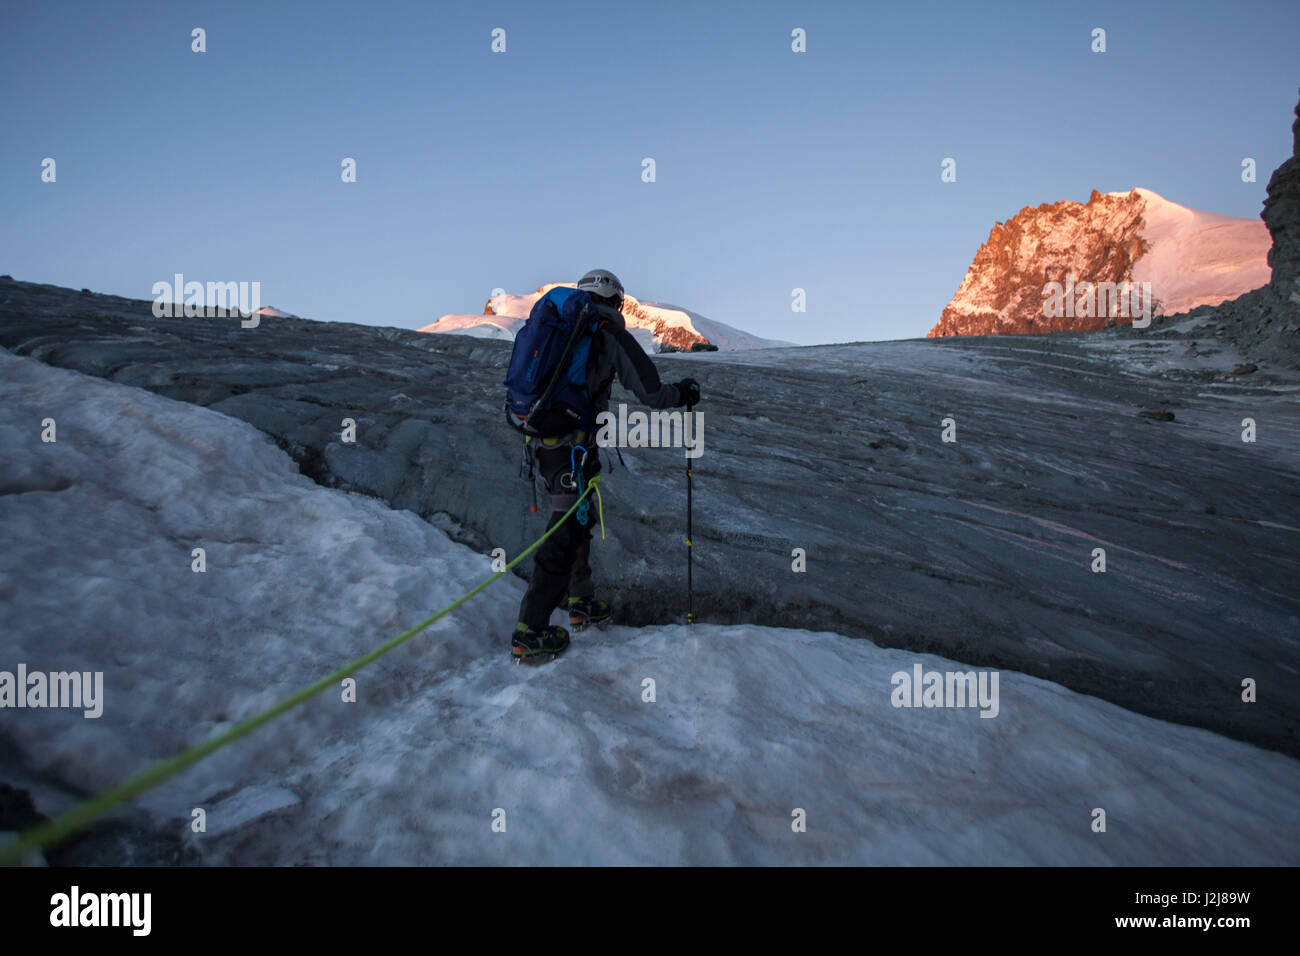 1 person, mountaineer in front of crevasse, climbing iron, ice, glacier, climb, approach, the sun, summit, loneliness, - Stock Image